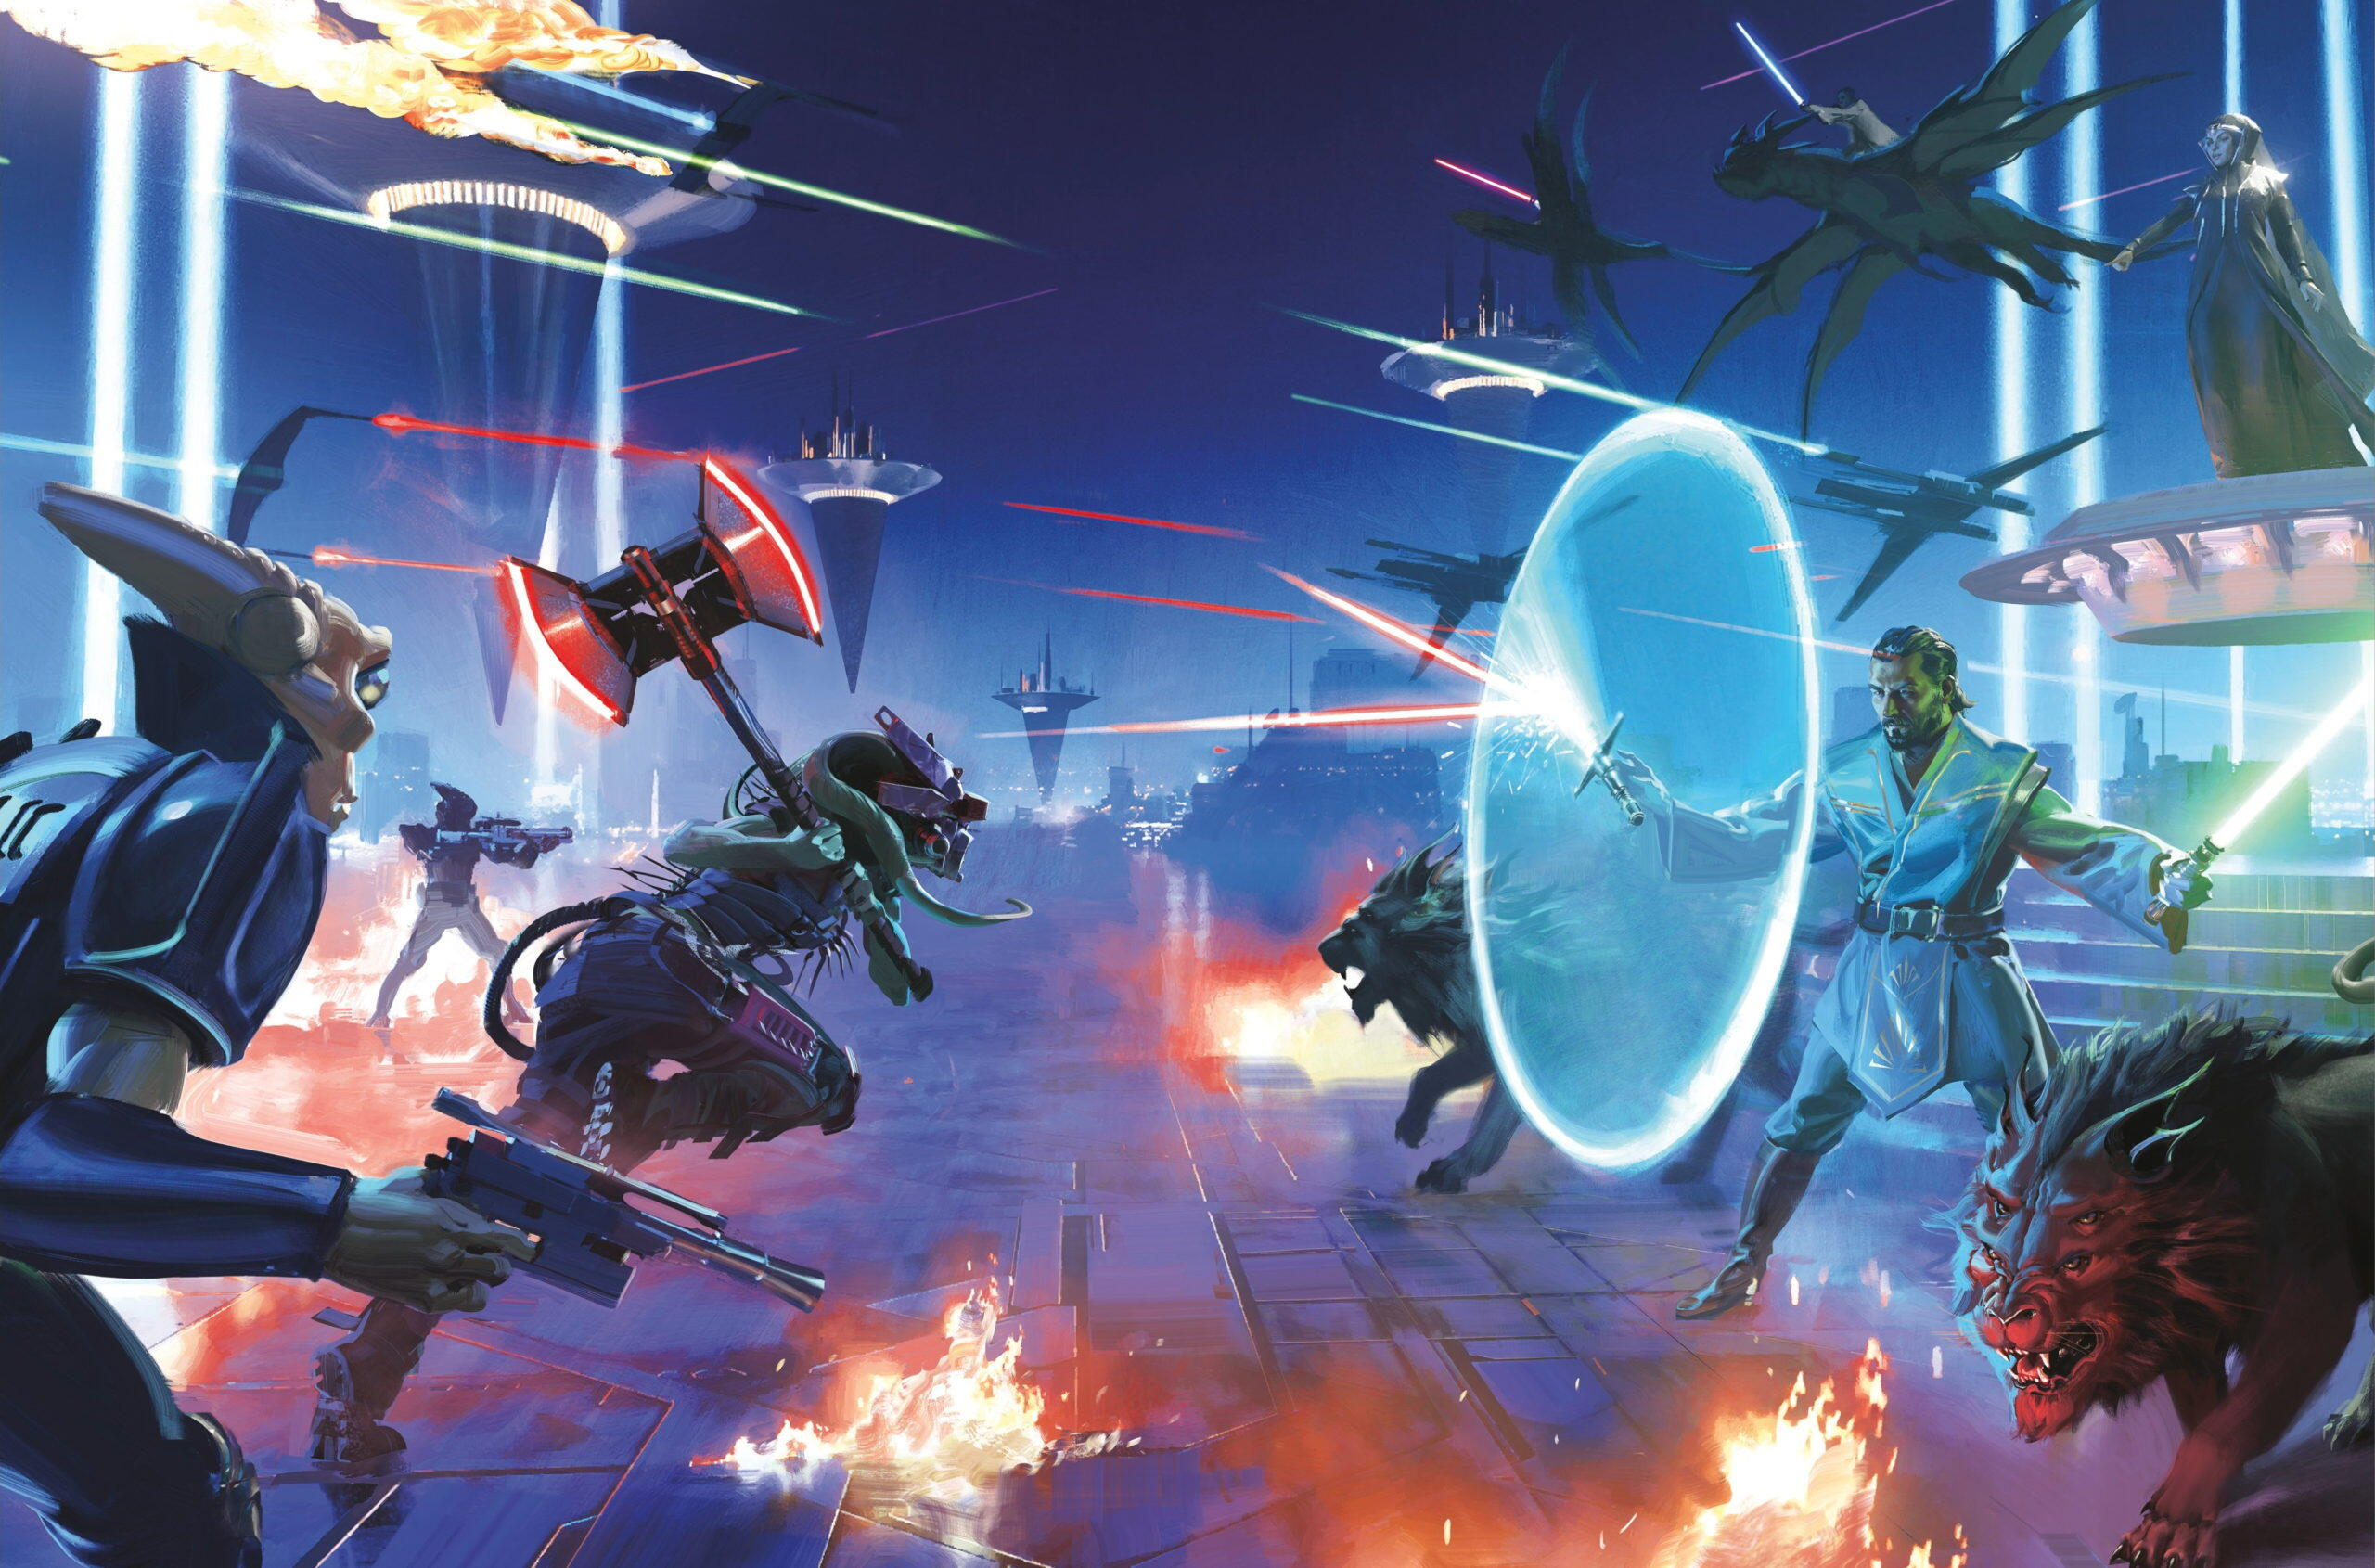 Star Wars: The Rising Storm alternate cover